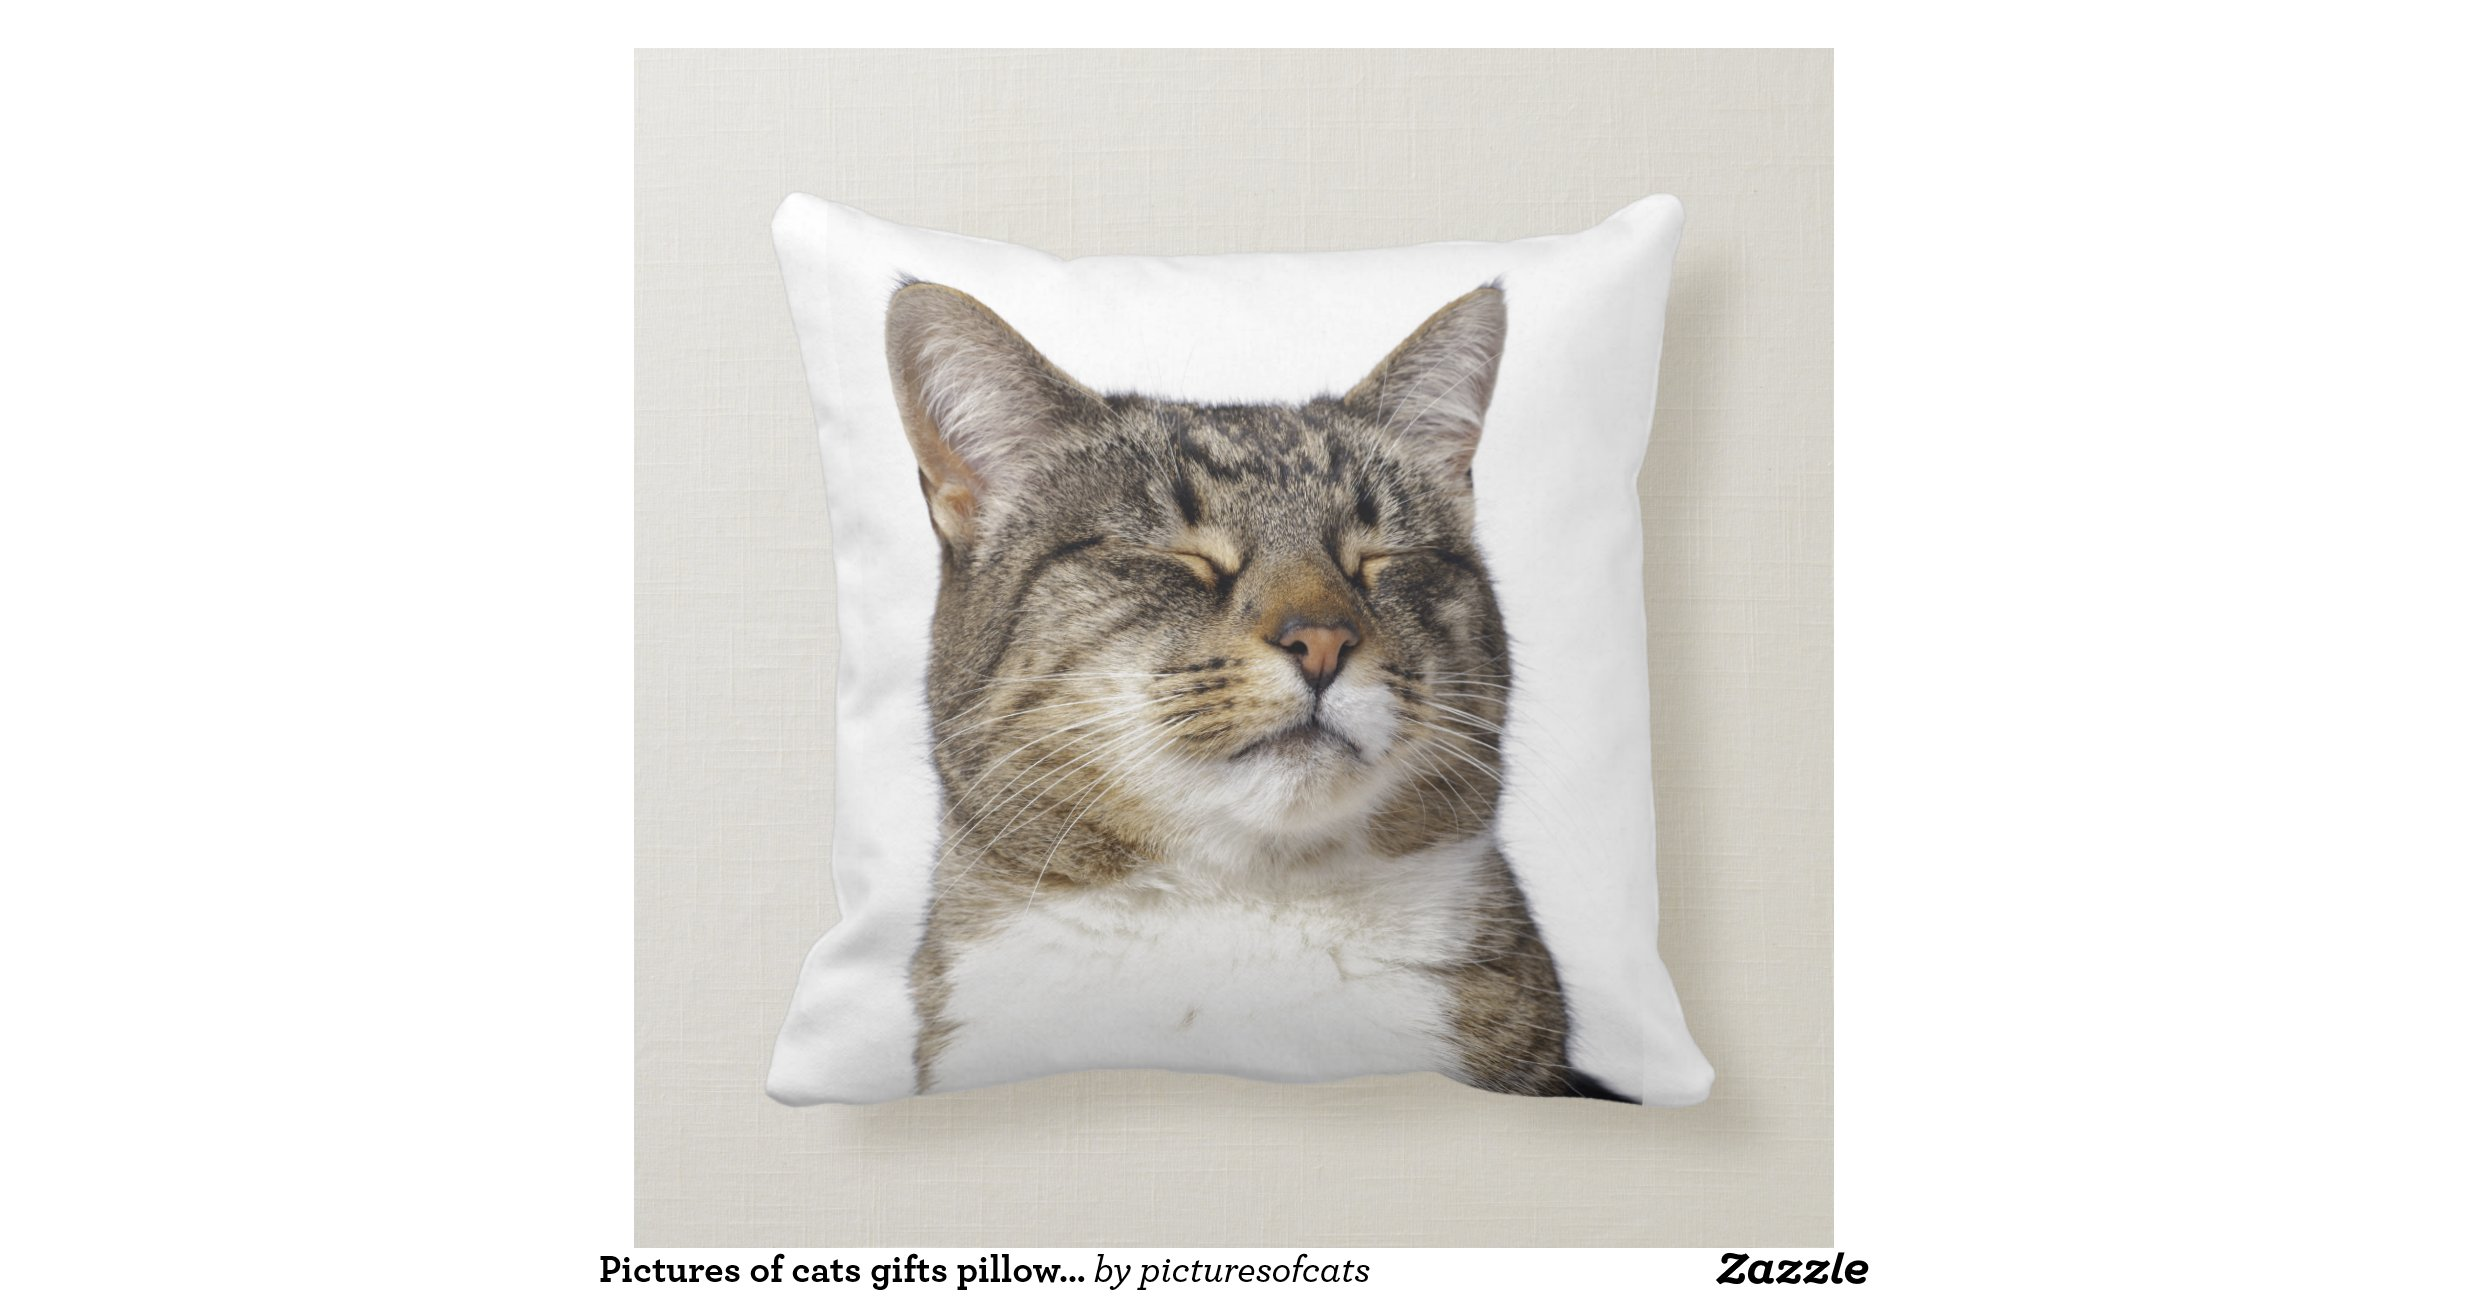 Pictures of cats gifts pillows throw pillows cats cushion  : picturesofcatsgiftspillowsthrowpillowscatscushion r103442bfdd7e435d91a1d37102859c5fi5fqz8byvr1200jpgviewpadding5B04523809523809522C02C0 from www.zazzle.com.au size 2468 x 1296 jpeg 214kB